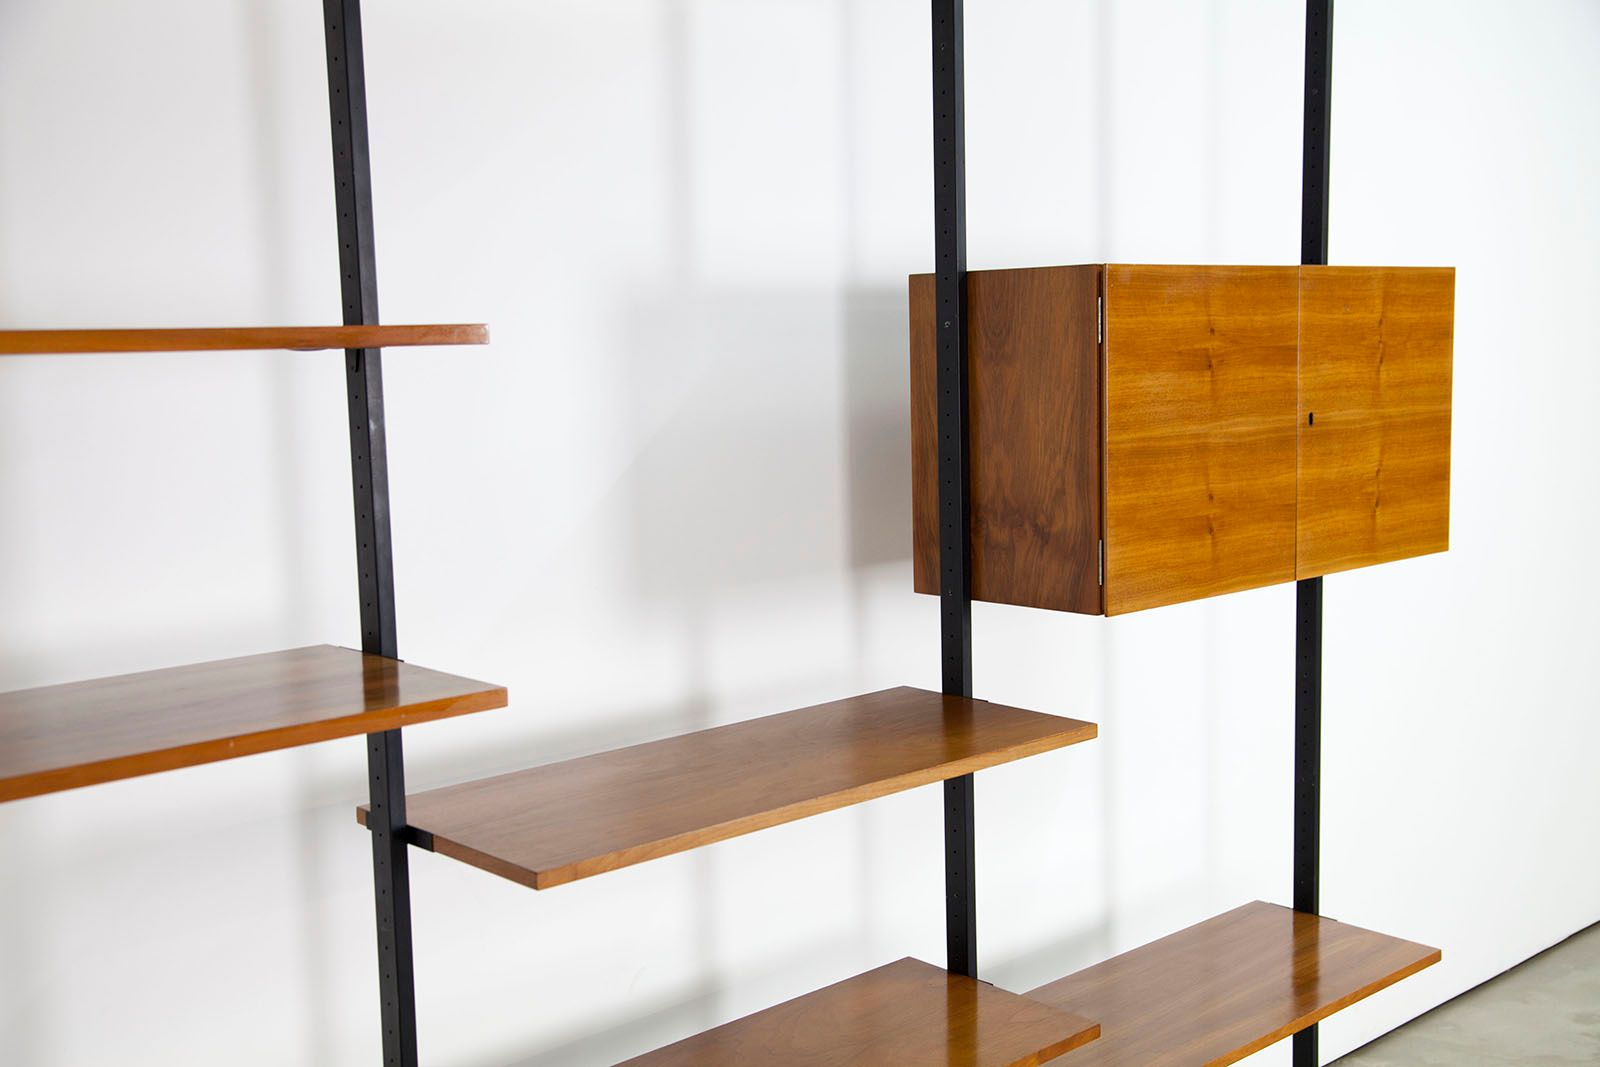 midcentury walnut shelving unit by up wieser for wohnbedarf for  - price per piece